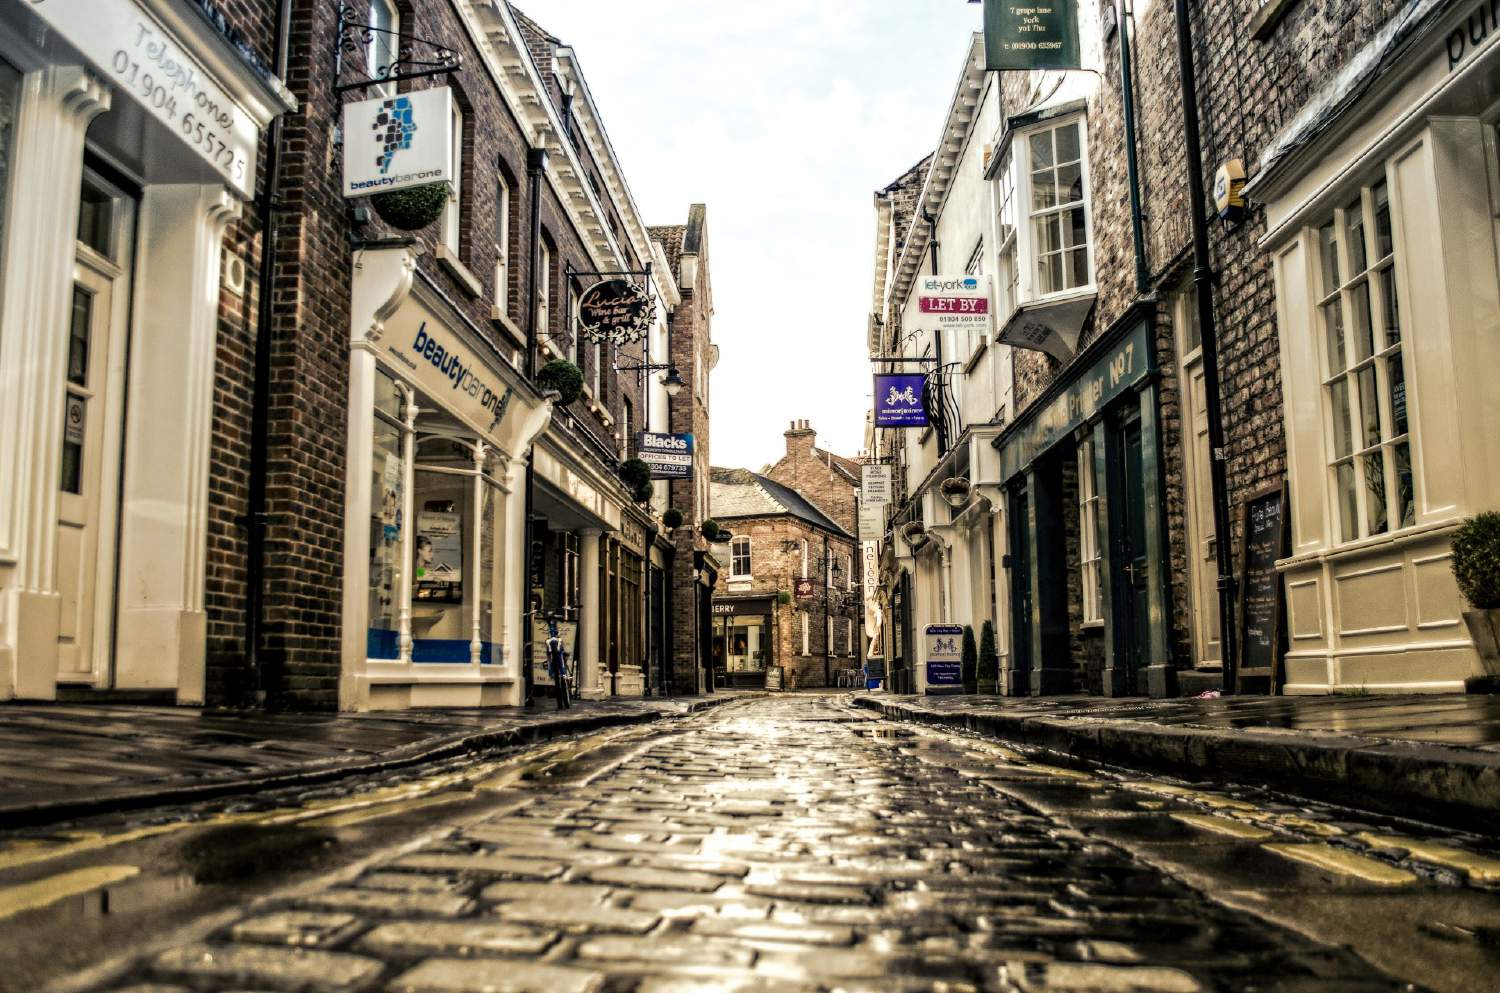 York City Council increases winter accommodation for rough sleepers